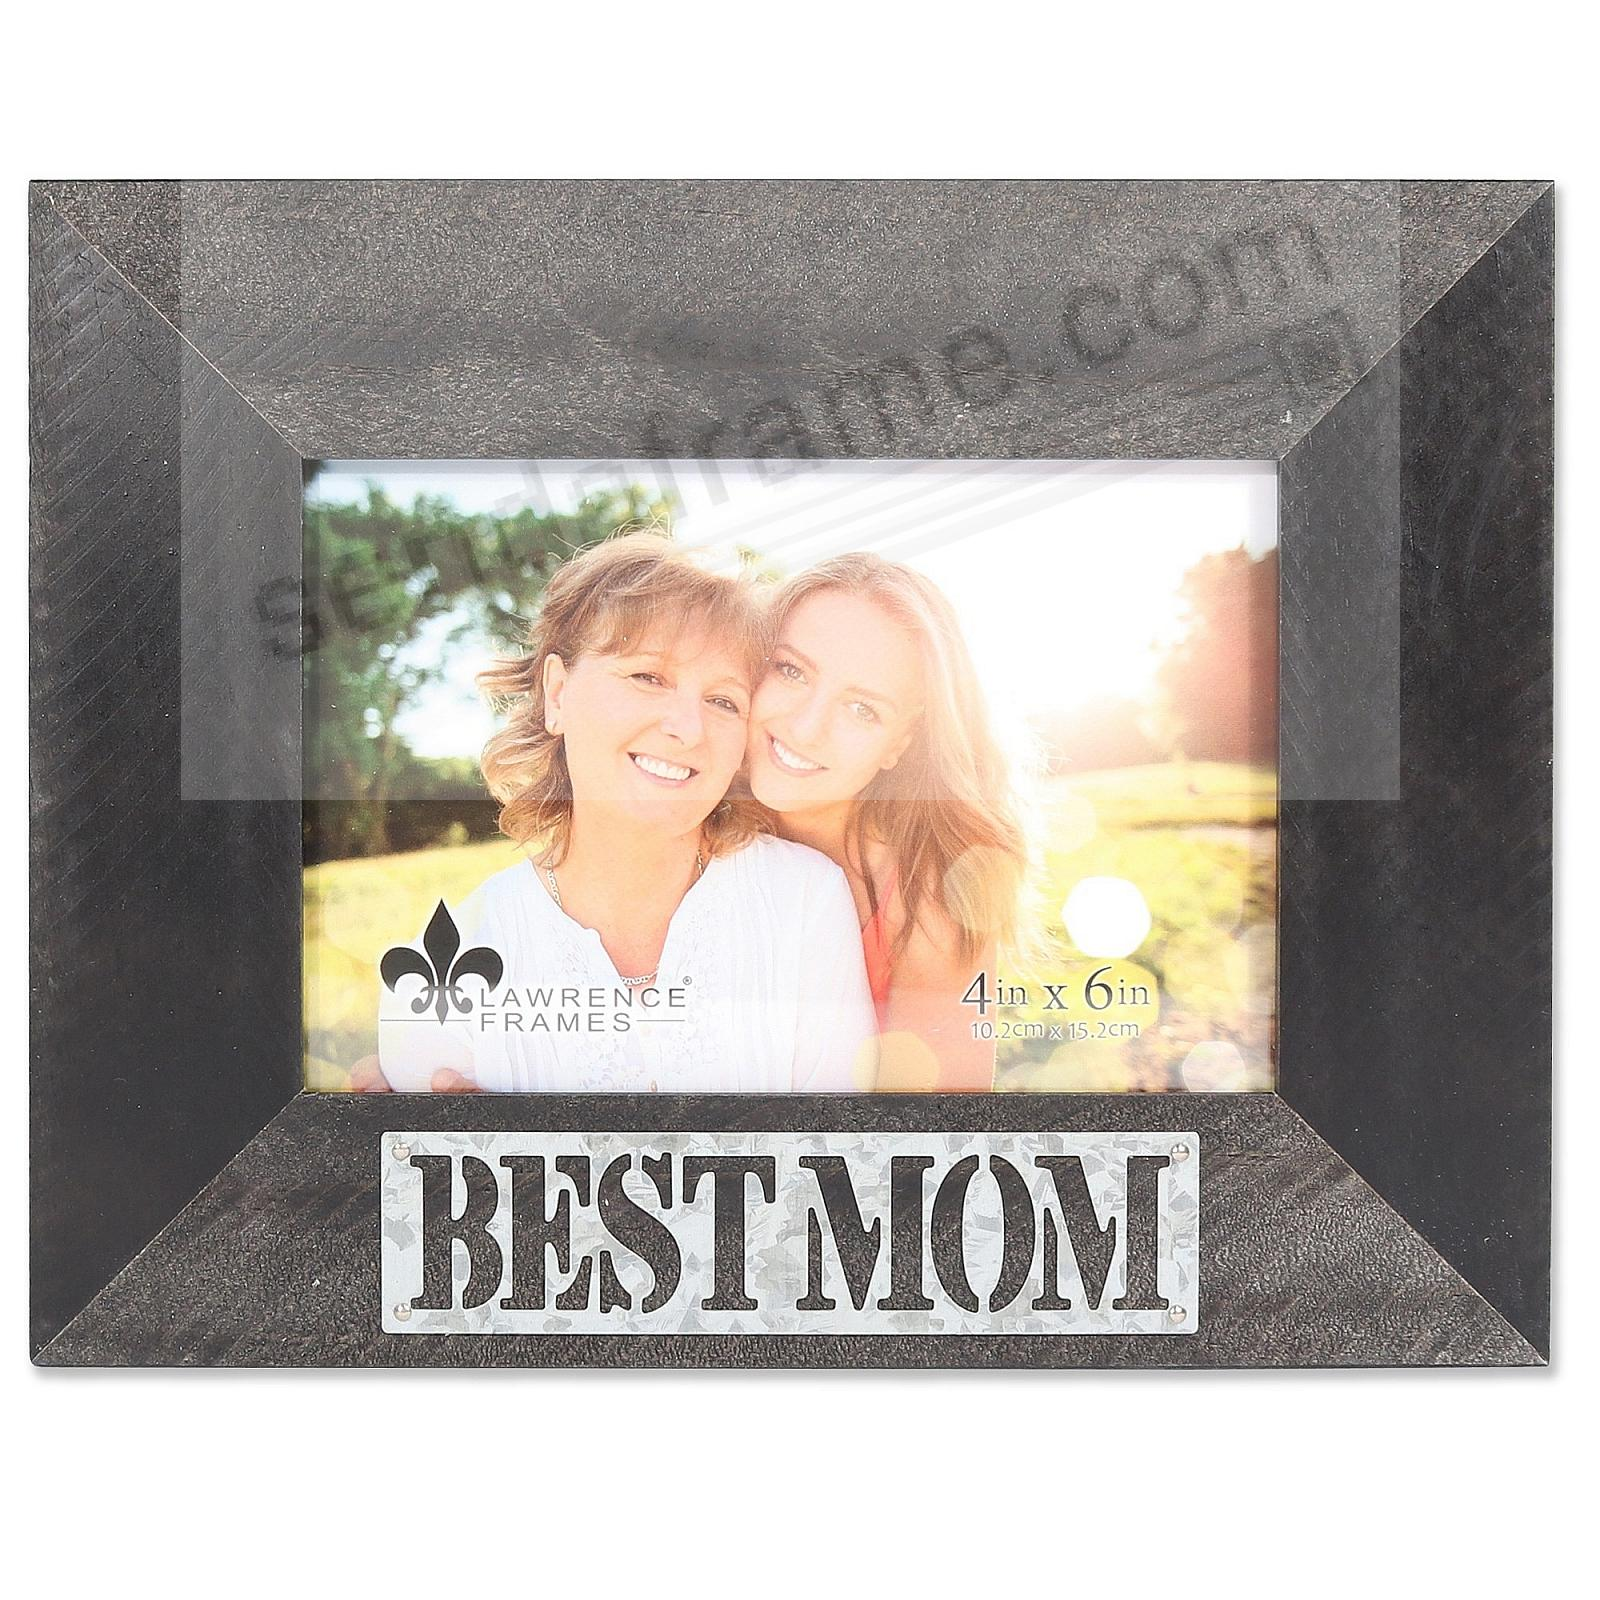 Black Weathered Frame with Galvanized Metallic BEST MOM Plaque